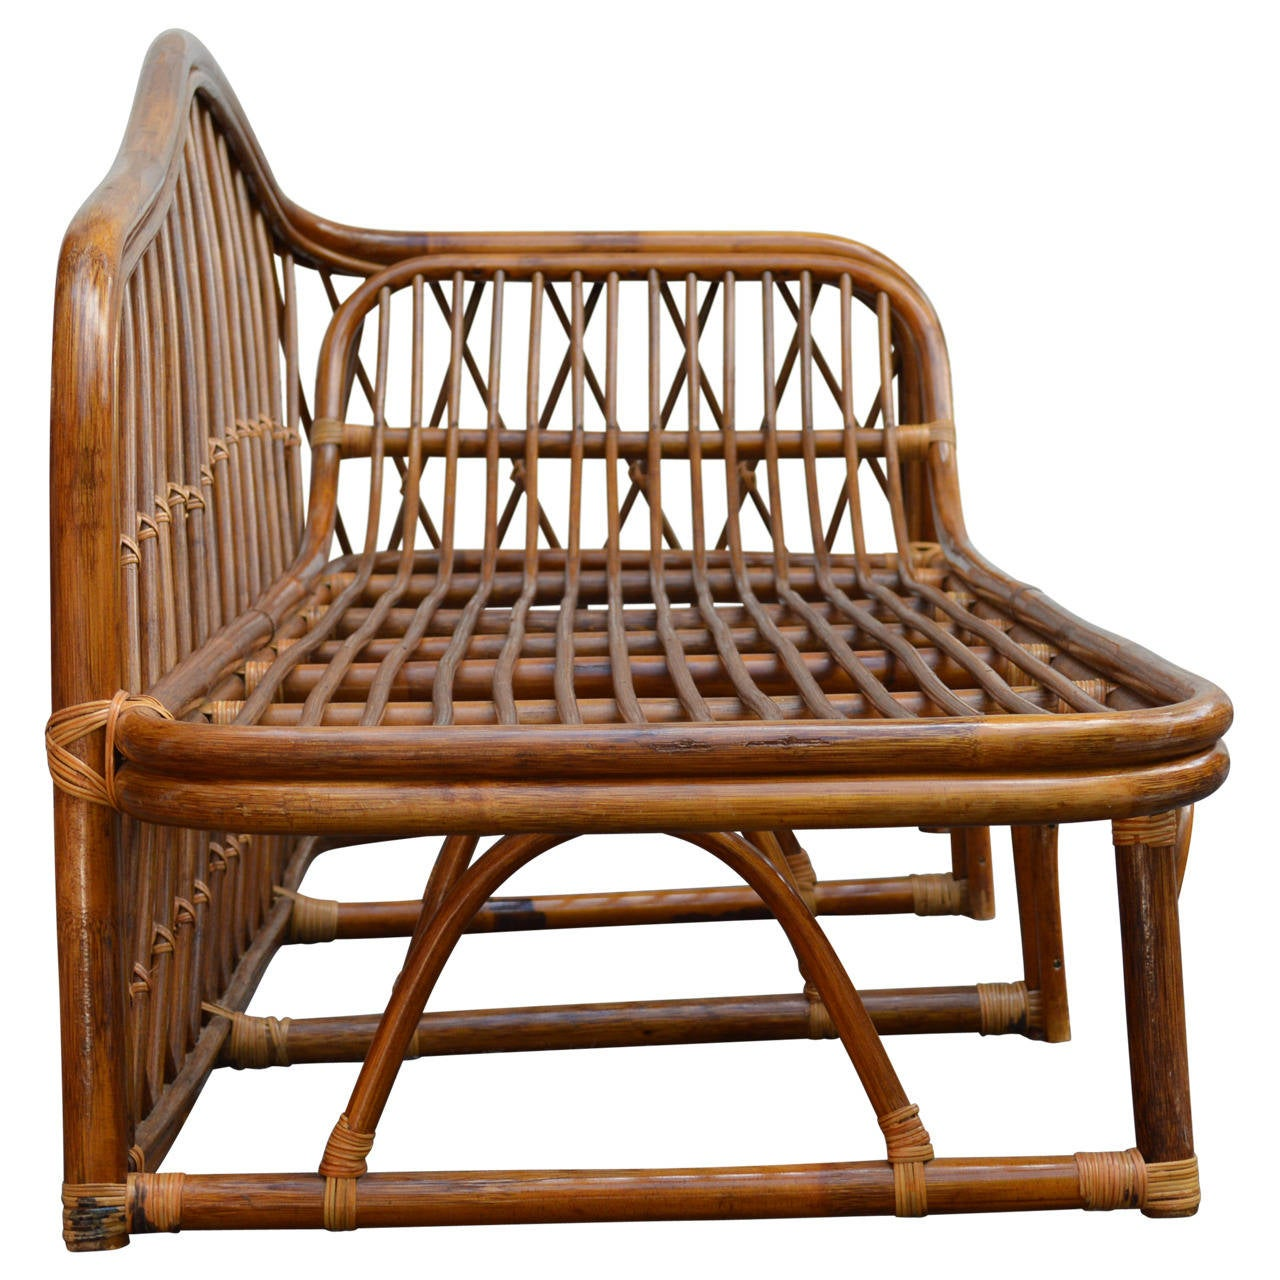 Vintage rattan chaise lounge at 1stdibs for Bamboo chaise lounge